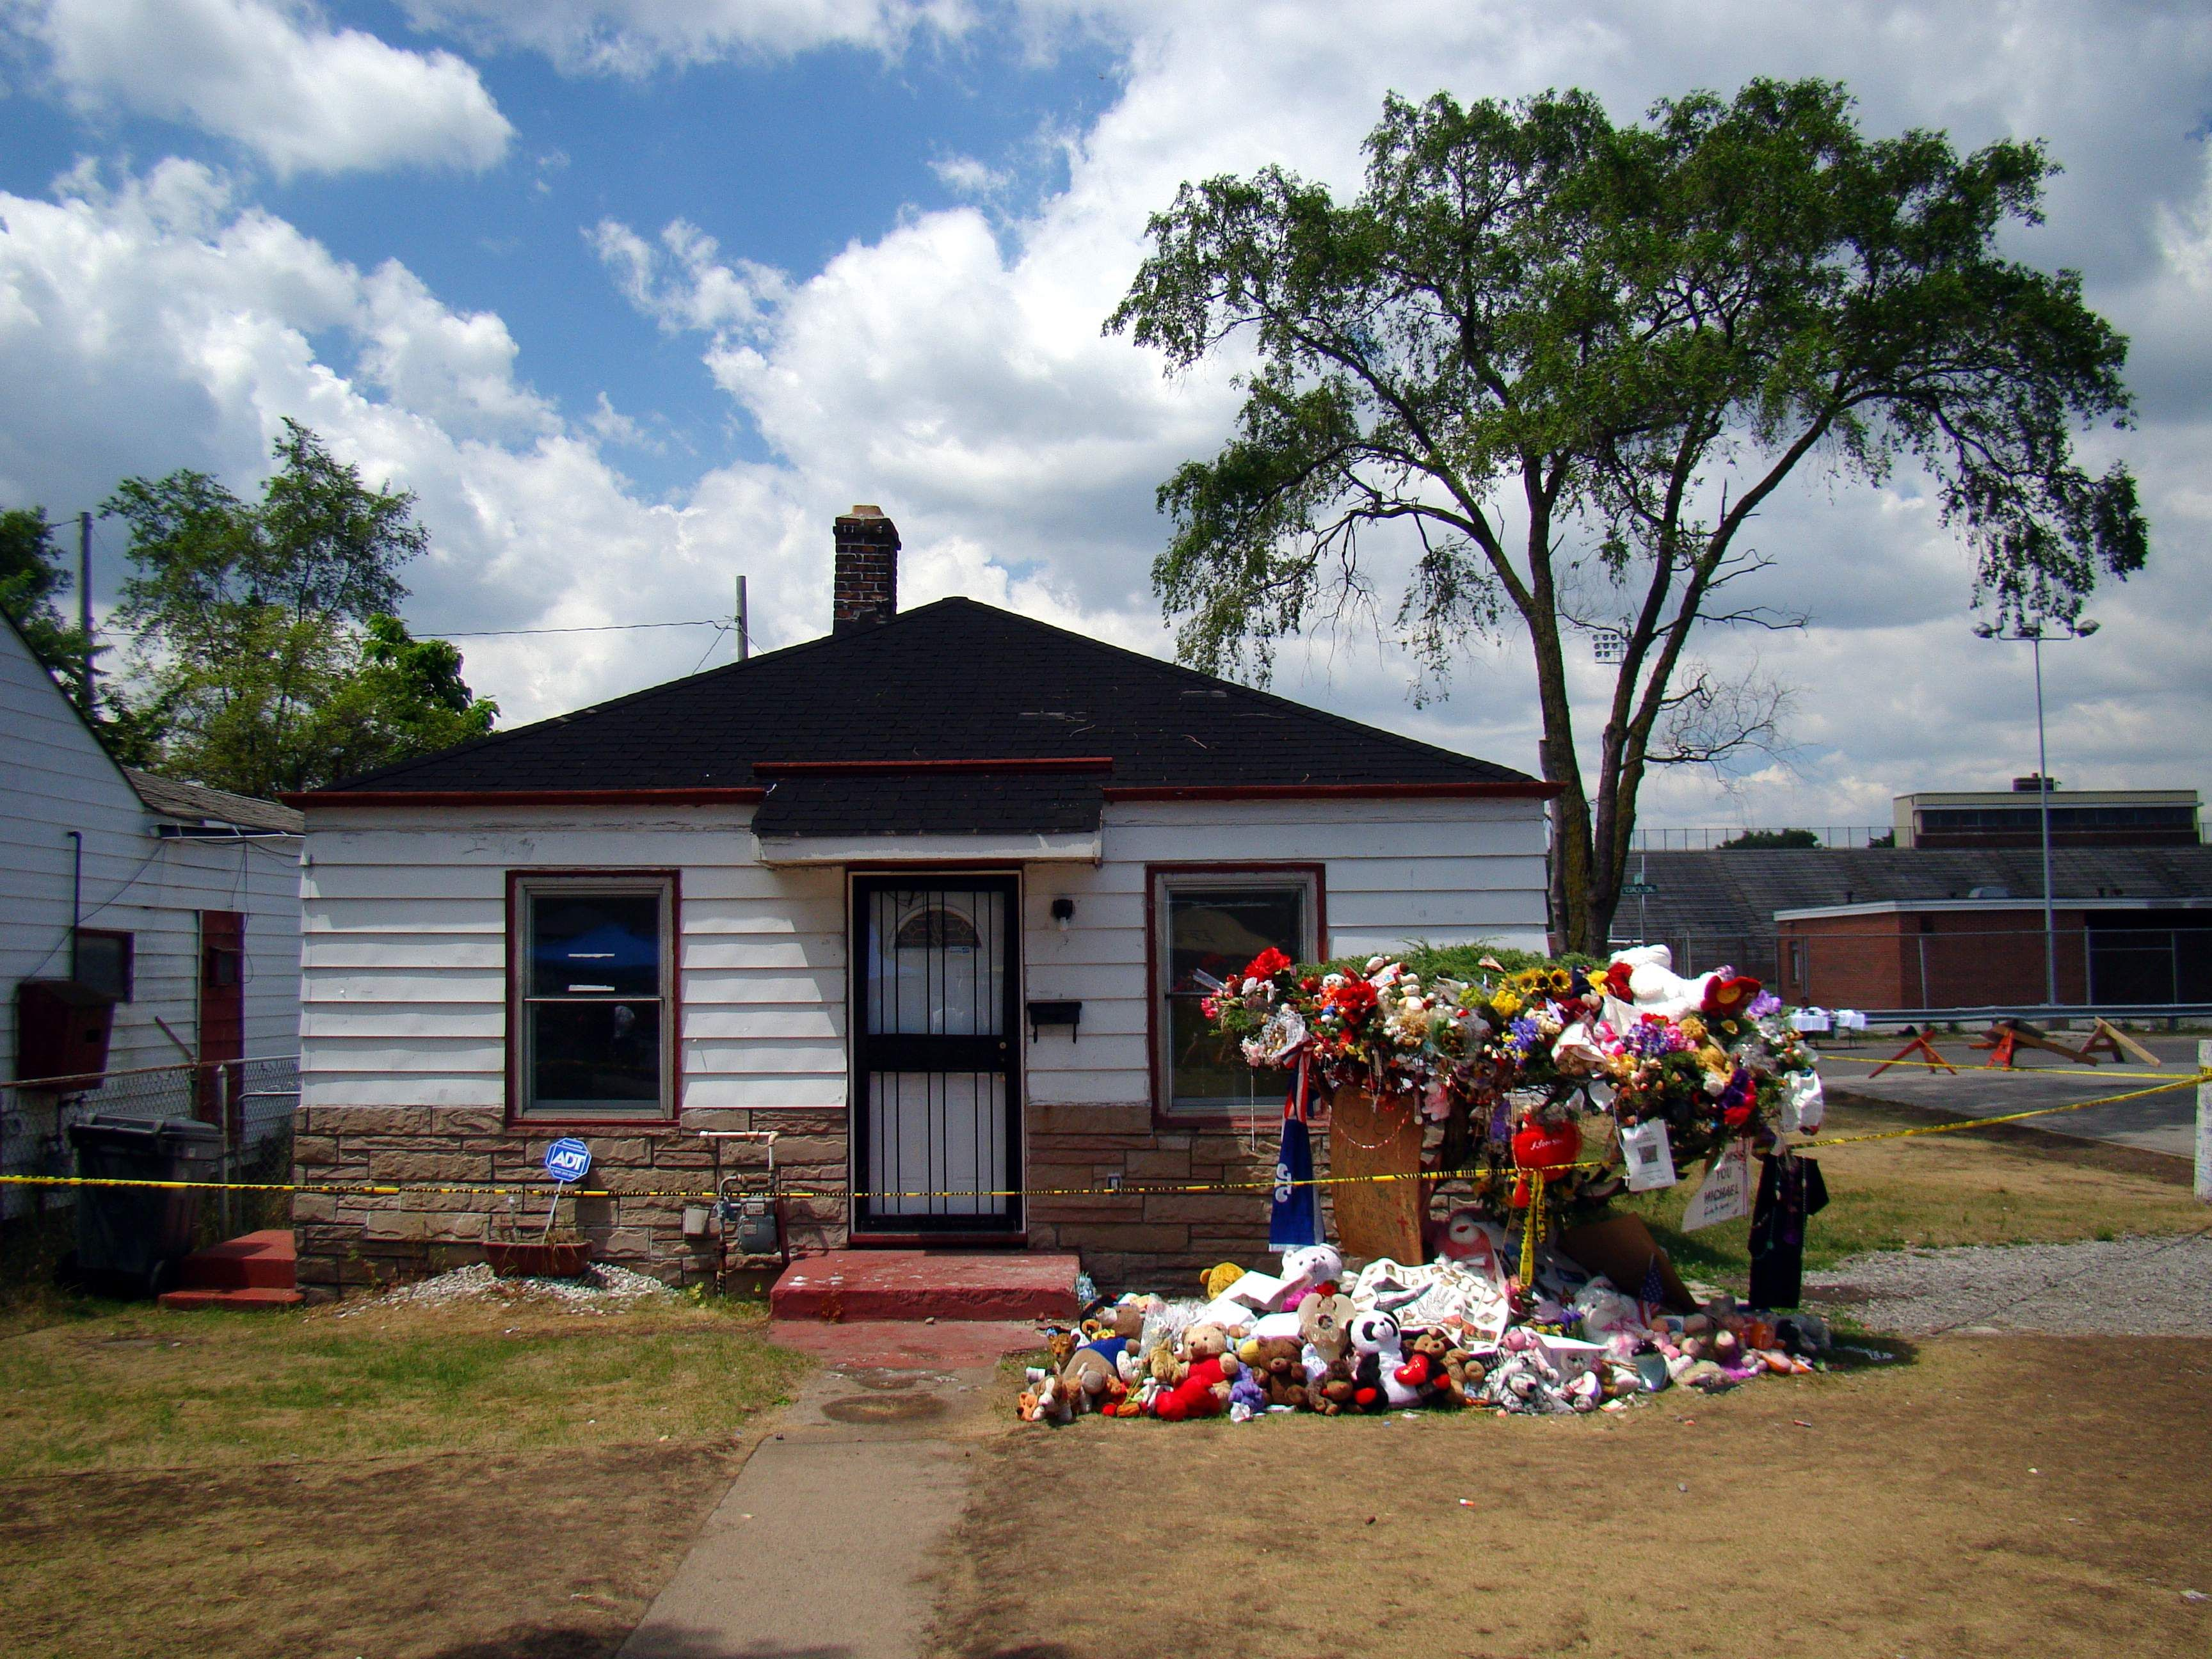 michael jackson s childhood home in gary na showing floral michael jackson s childhood home in gary na showing floral tributes after his death in an interview martin bashir later included in t